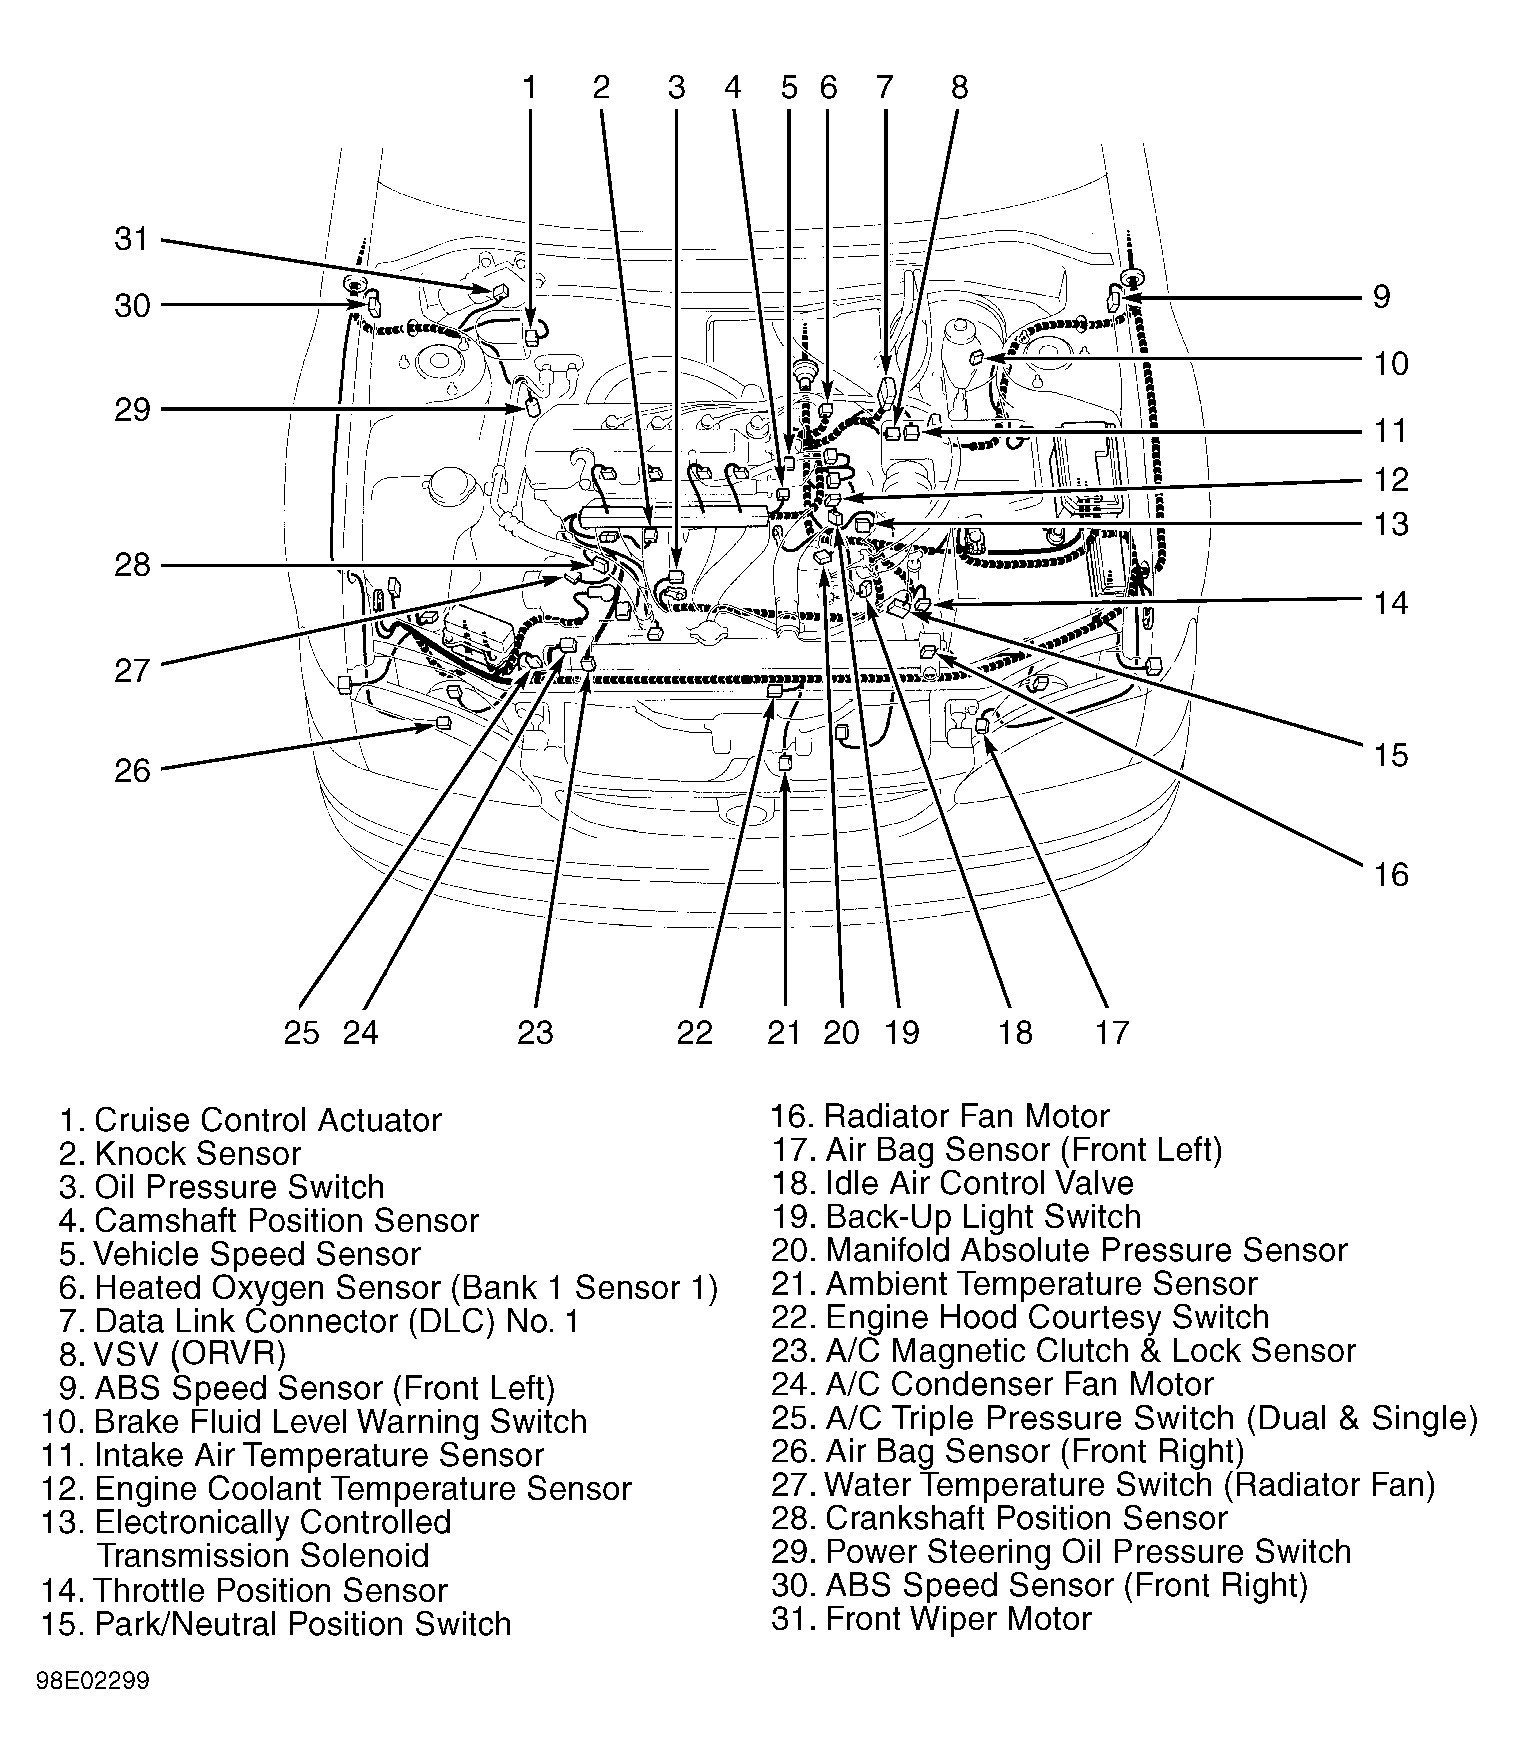 Mustang Engine Diagram 1999 toyota Corolla Engine Part Diagram Engine Part Diagram Car Of Mustang Engine Diagram Rv Park Wiring Diagram Free Picture Schematic Another Blog About